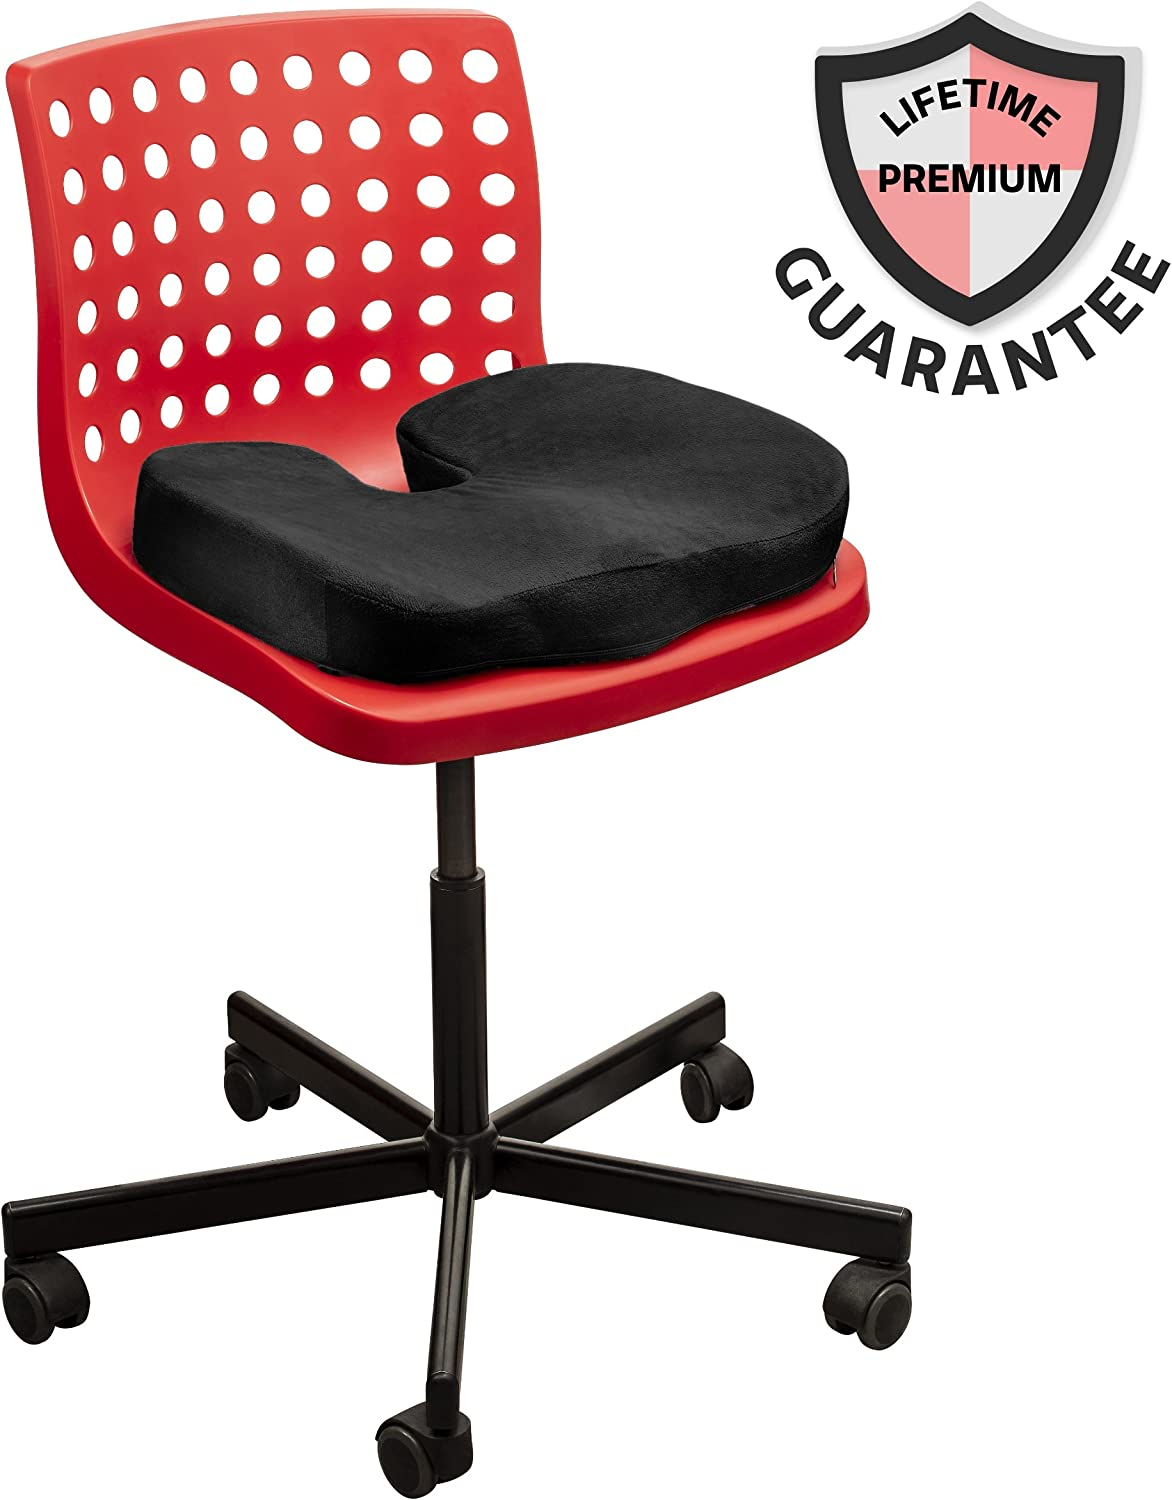 Seat Cushion Car Office Chair - Memory Foam Gel-Enhanced, Ergonomically & Large Designed Pillow for Sciatica, Tailbone, Coccyx Back Pain, And Relief, Comfort - Seat Cushion Car Office Chair - Black: Home & Kitchen